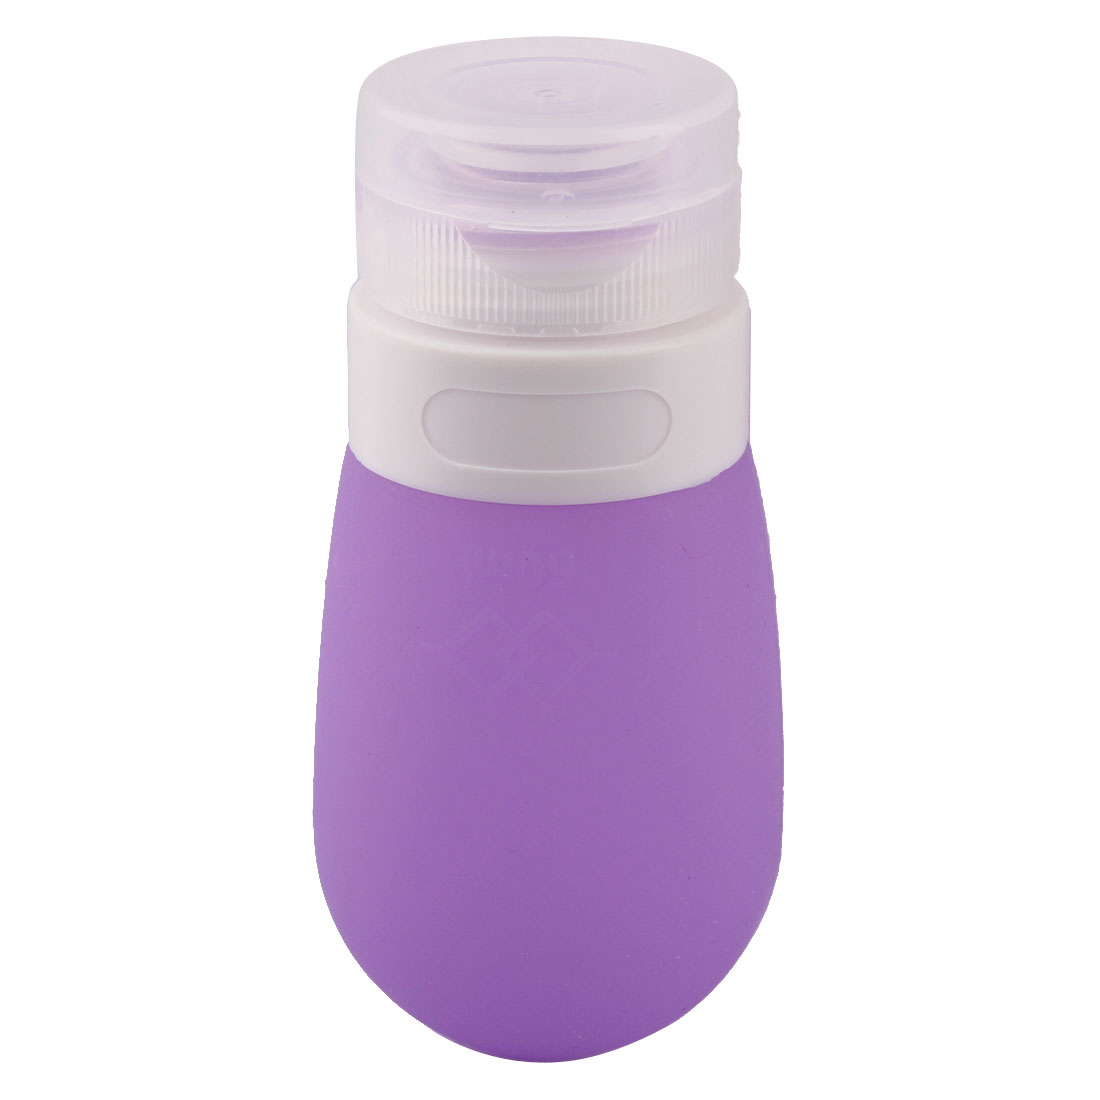 Travel Plastic Cap Silicone Perfume Lotion Cosmetic Bottle Container Purple 60ml